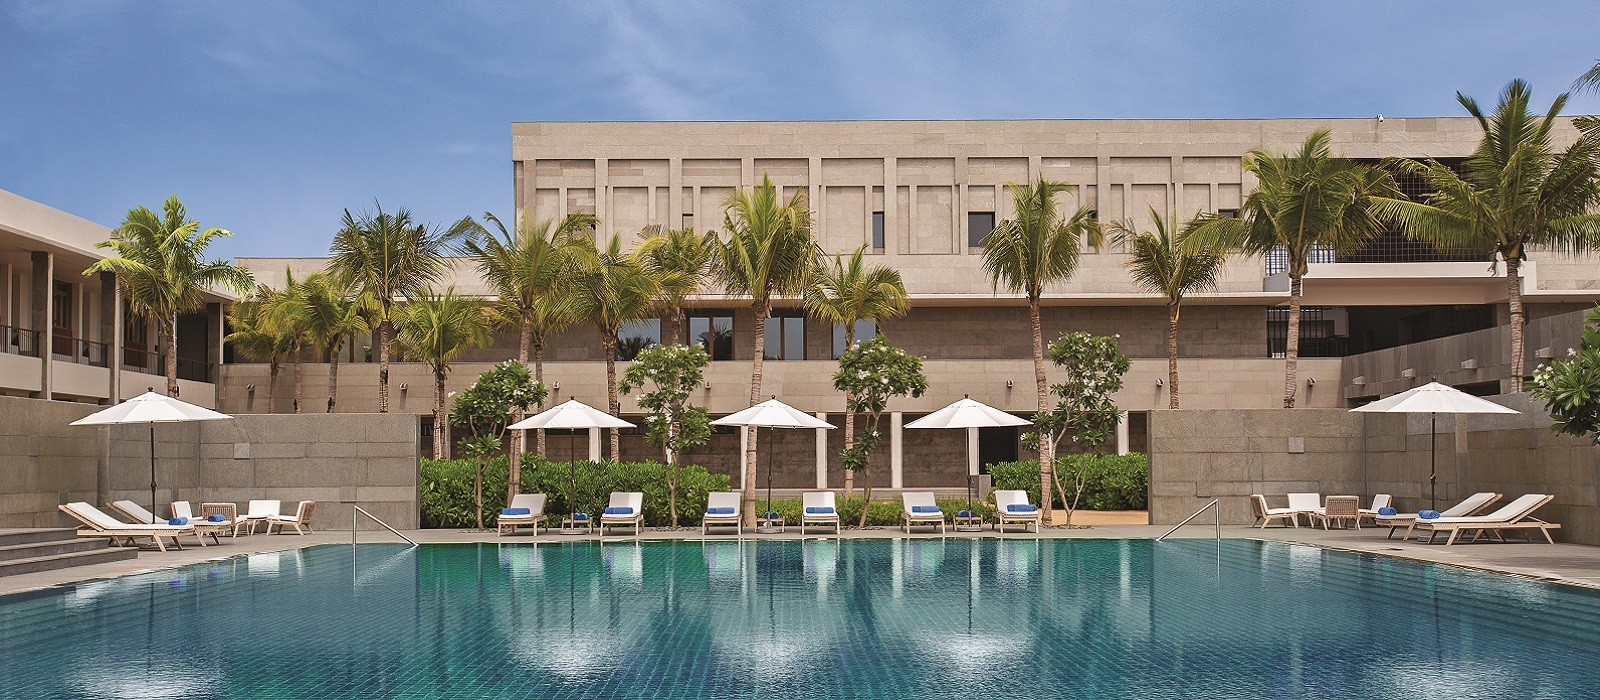 Hotel InterContinental Chennai Mahabalipuram Resort Südindien